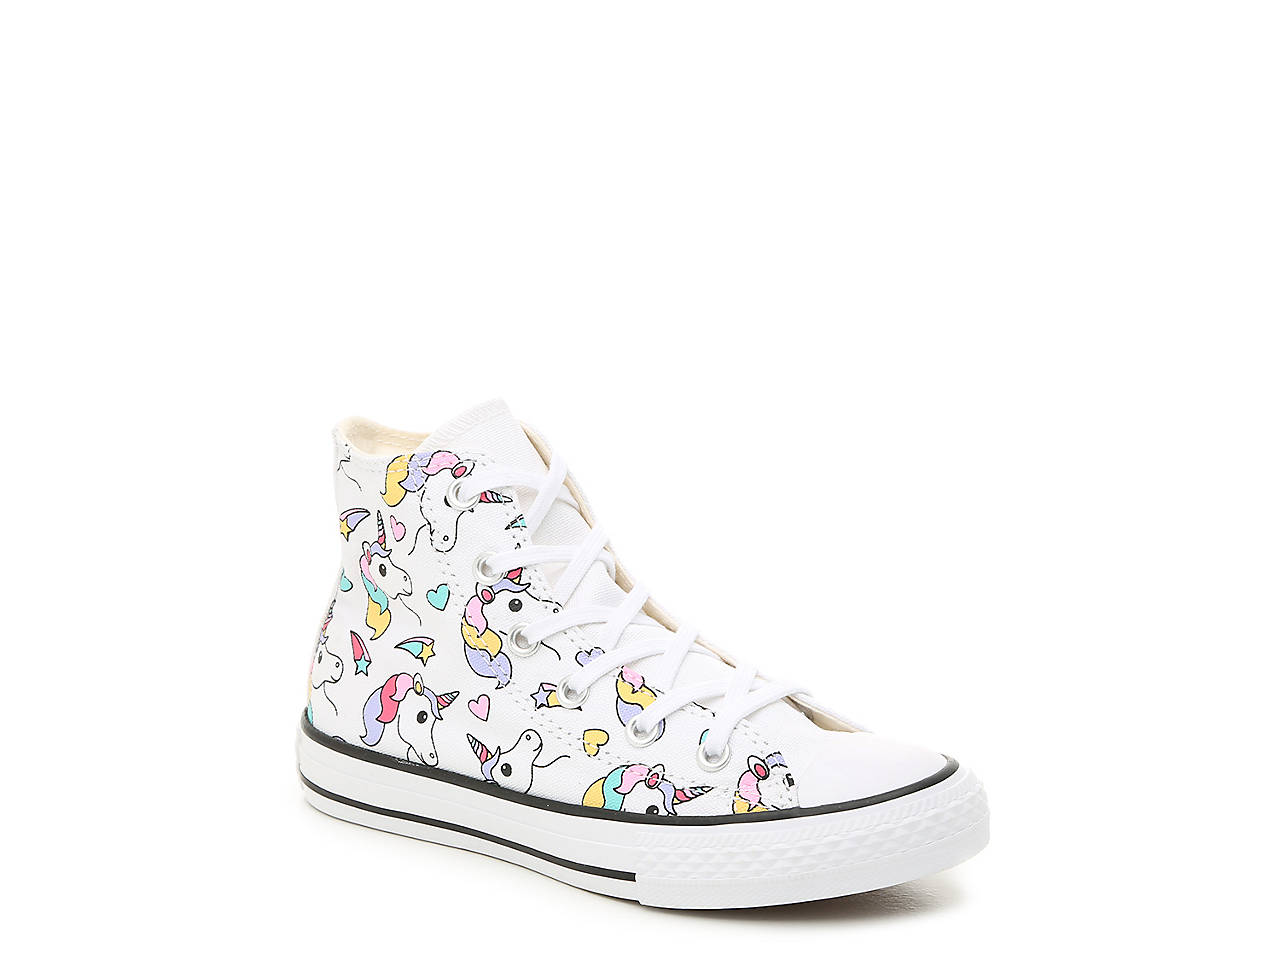 59fbc06ec872 Converse Chuck Taylor All Star Unicorn Toddler   Youth High-Top ...